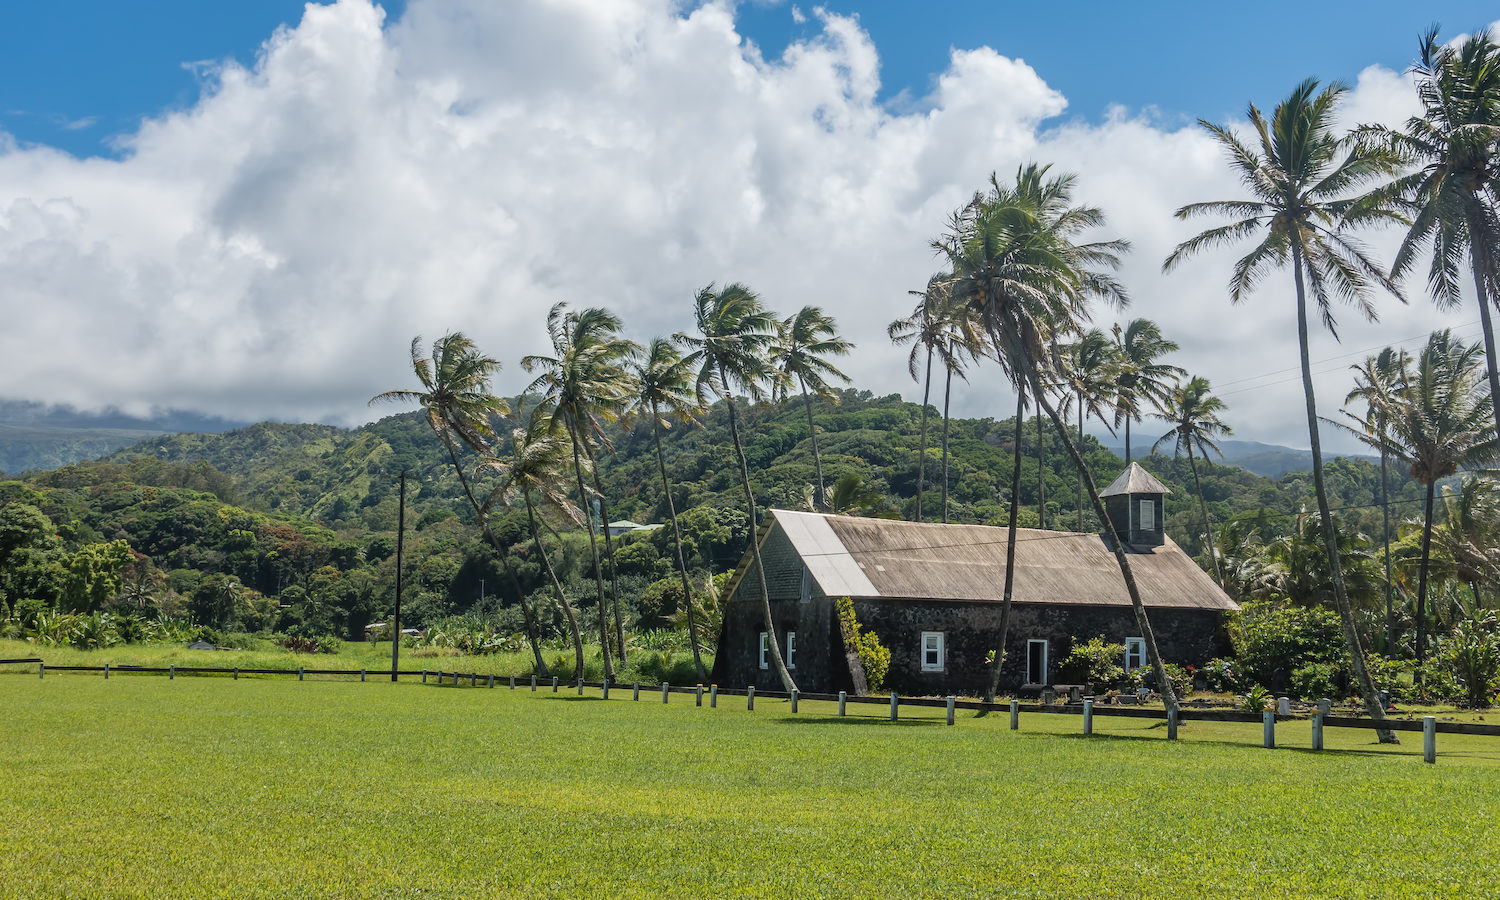 Road to Hana GyPSy Guide Narrated Driving Tour App